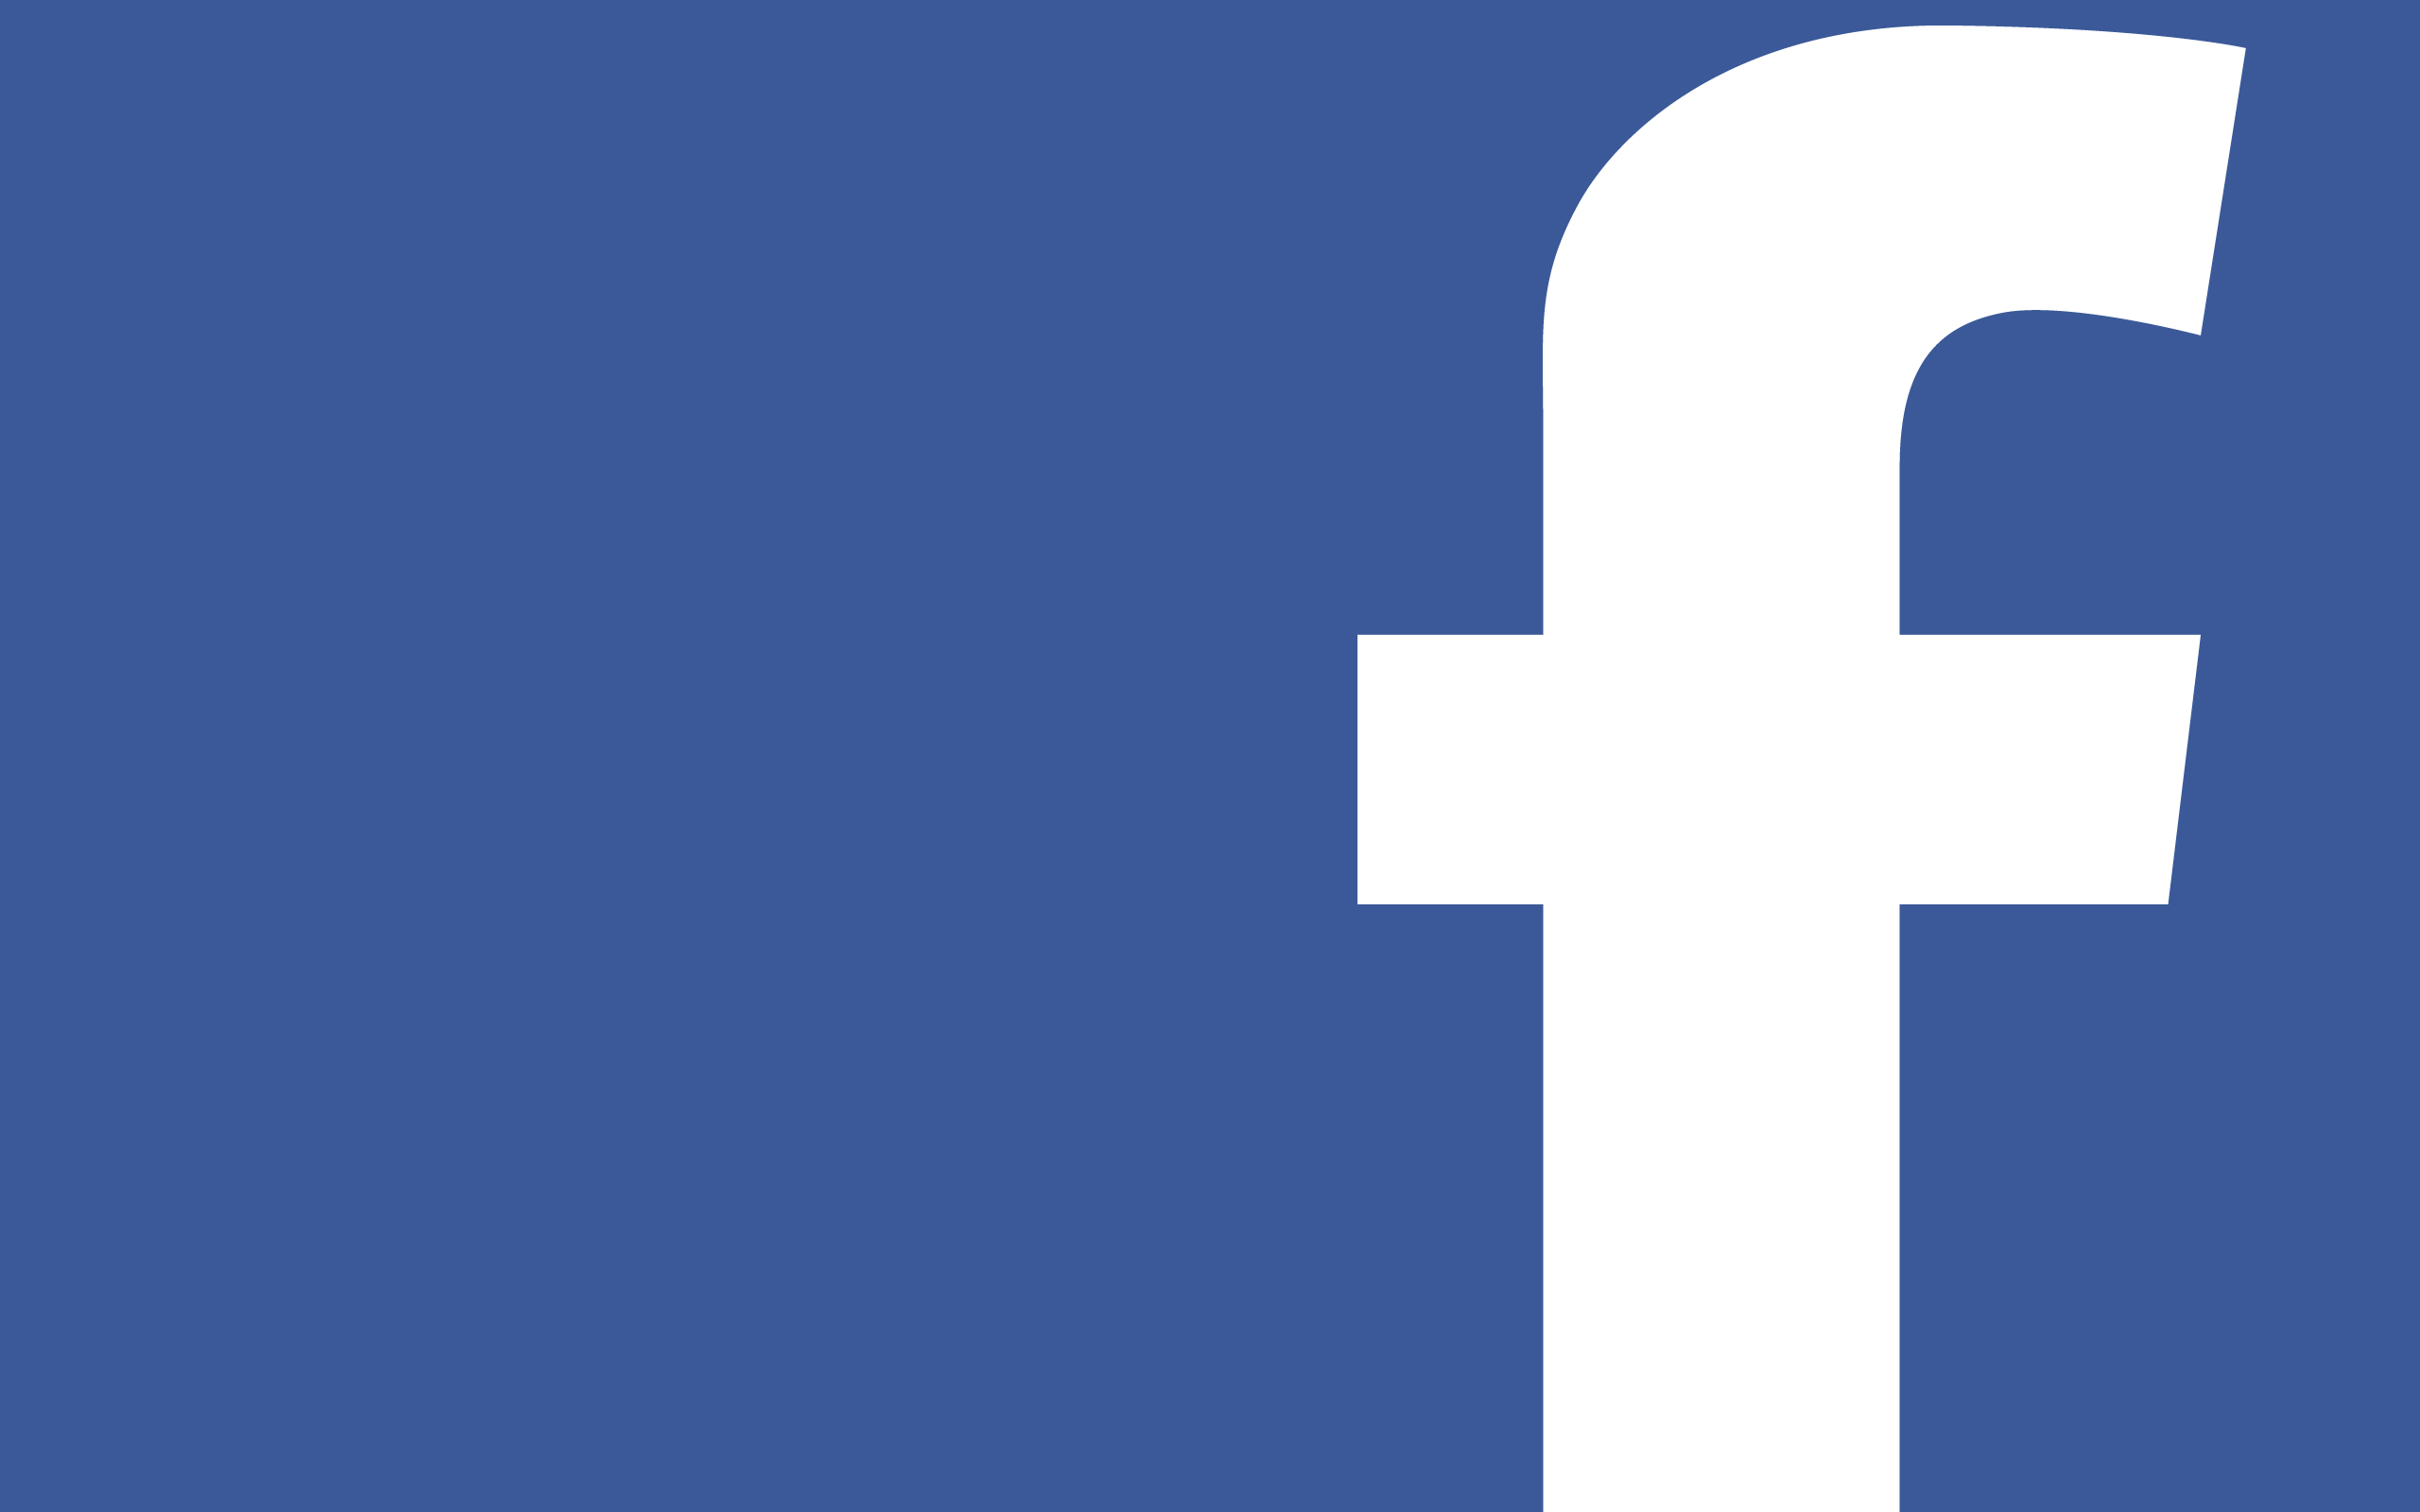 Facebook Wallpapers Backgrounds Hd 14